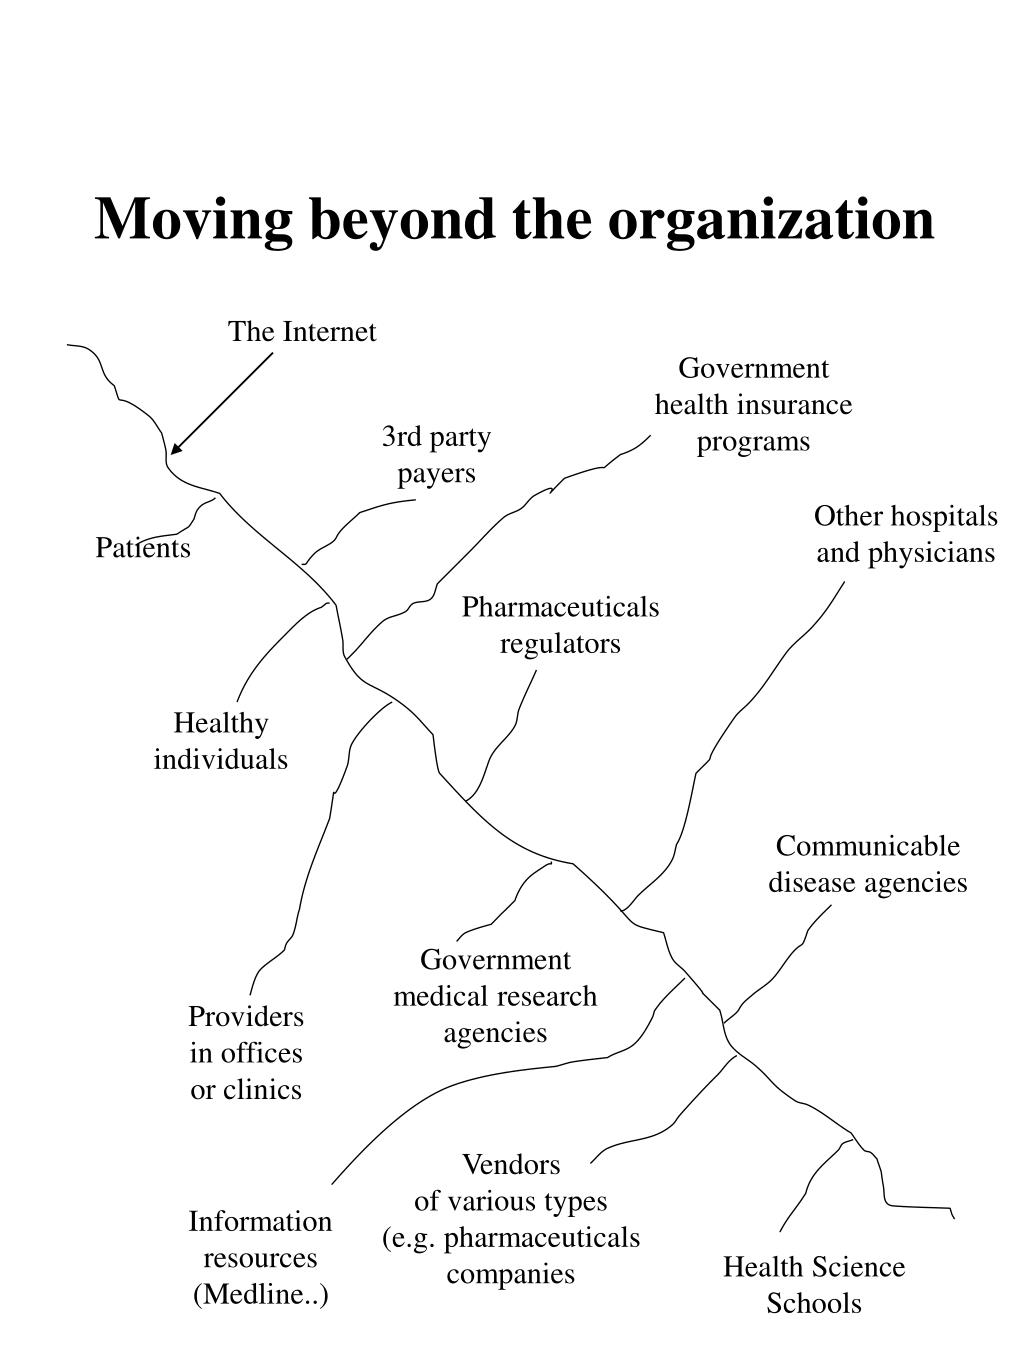 Moving beyond the organization